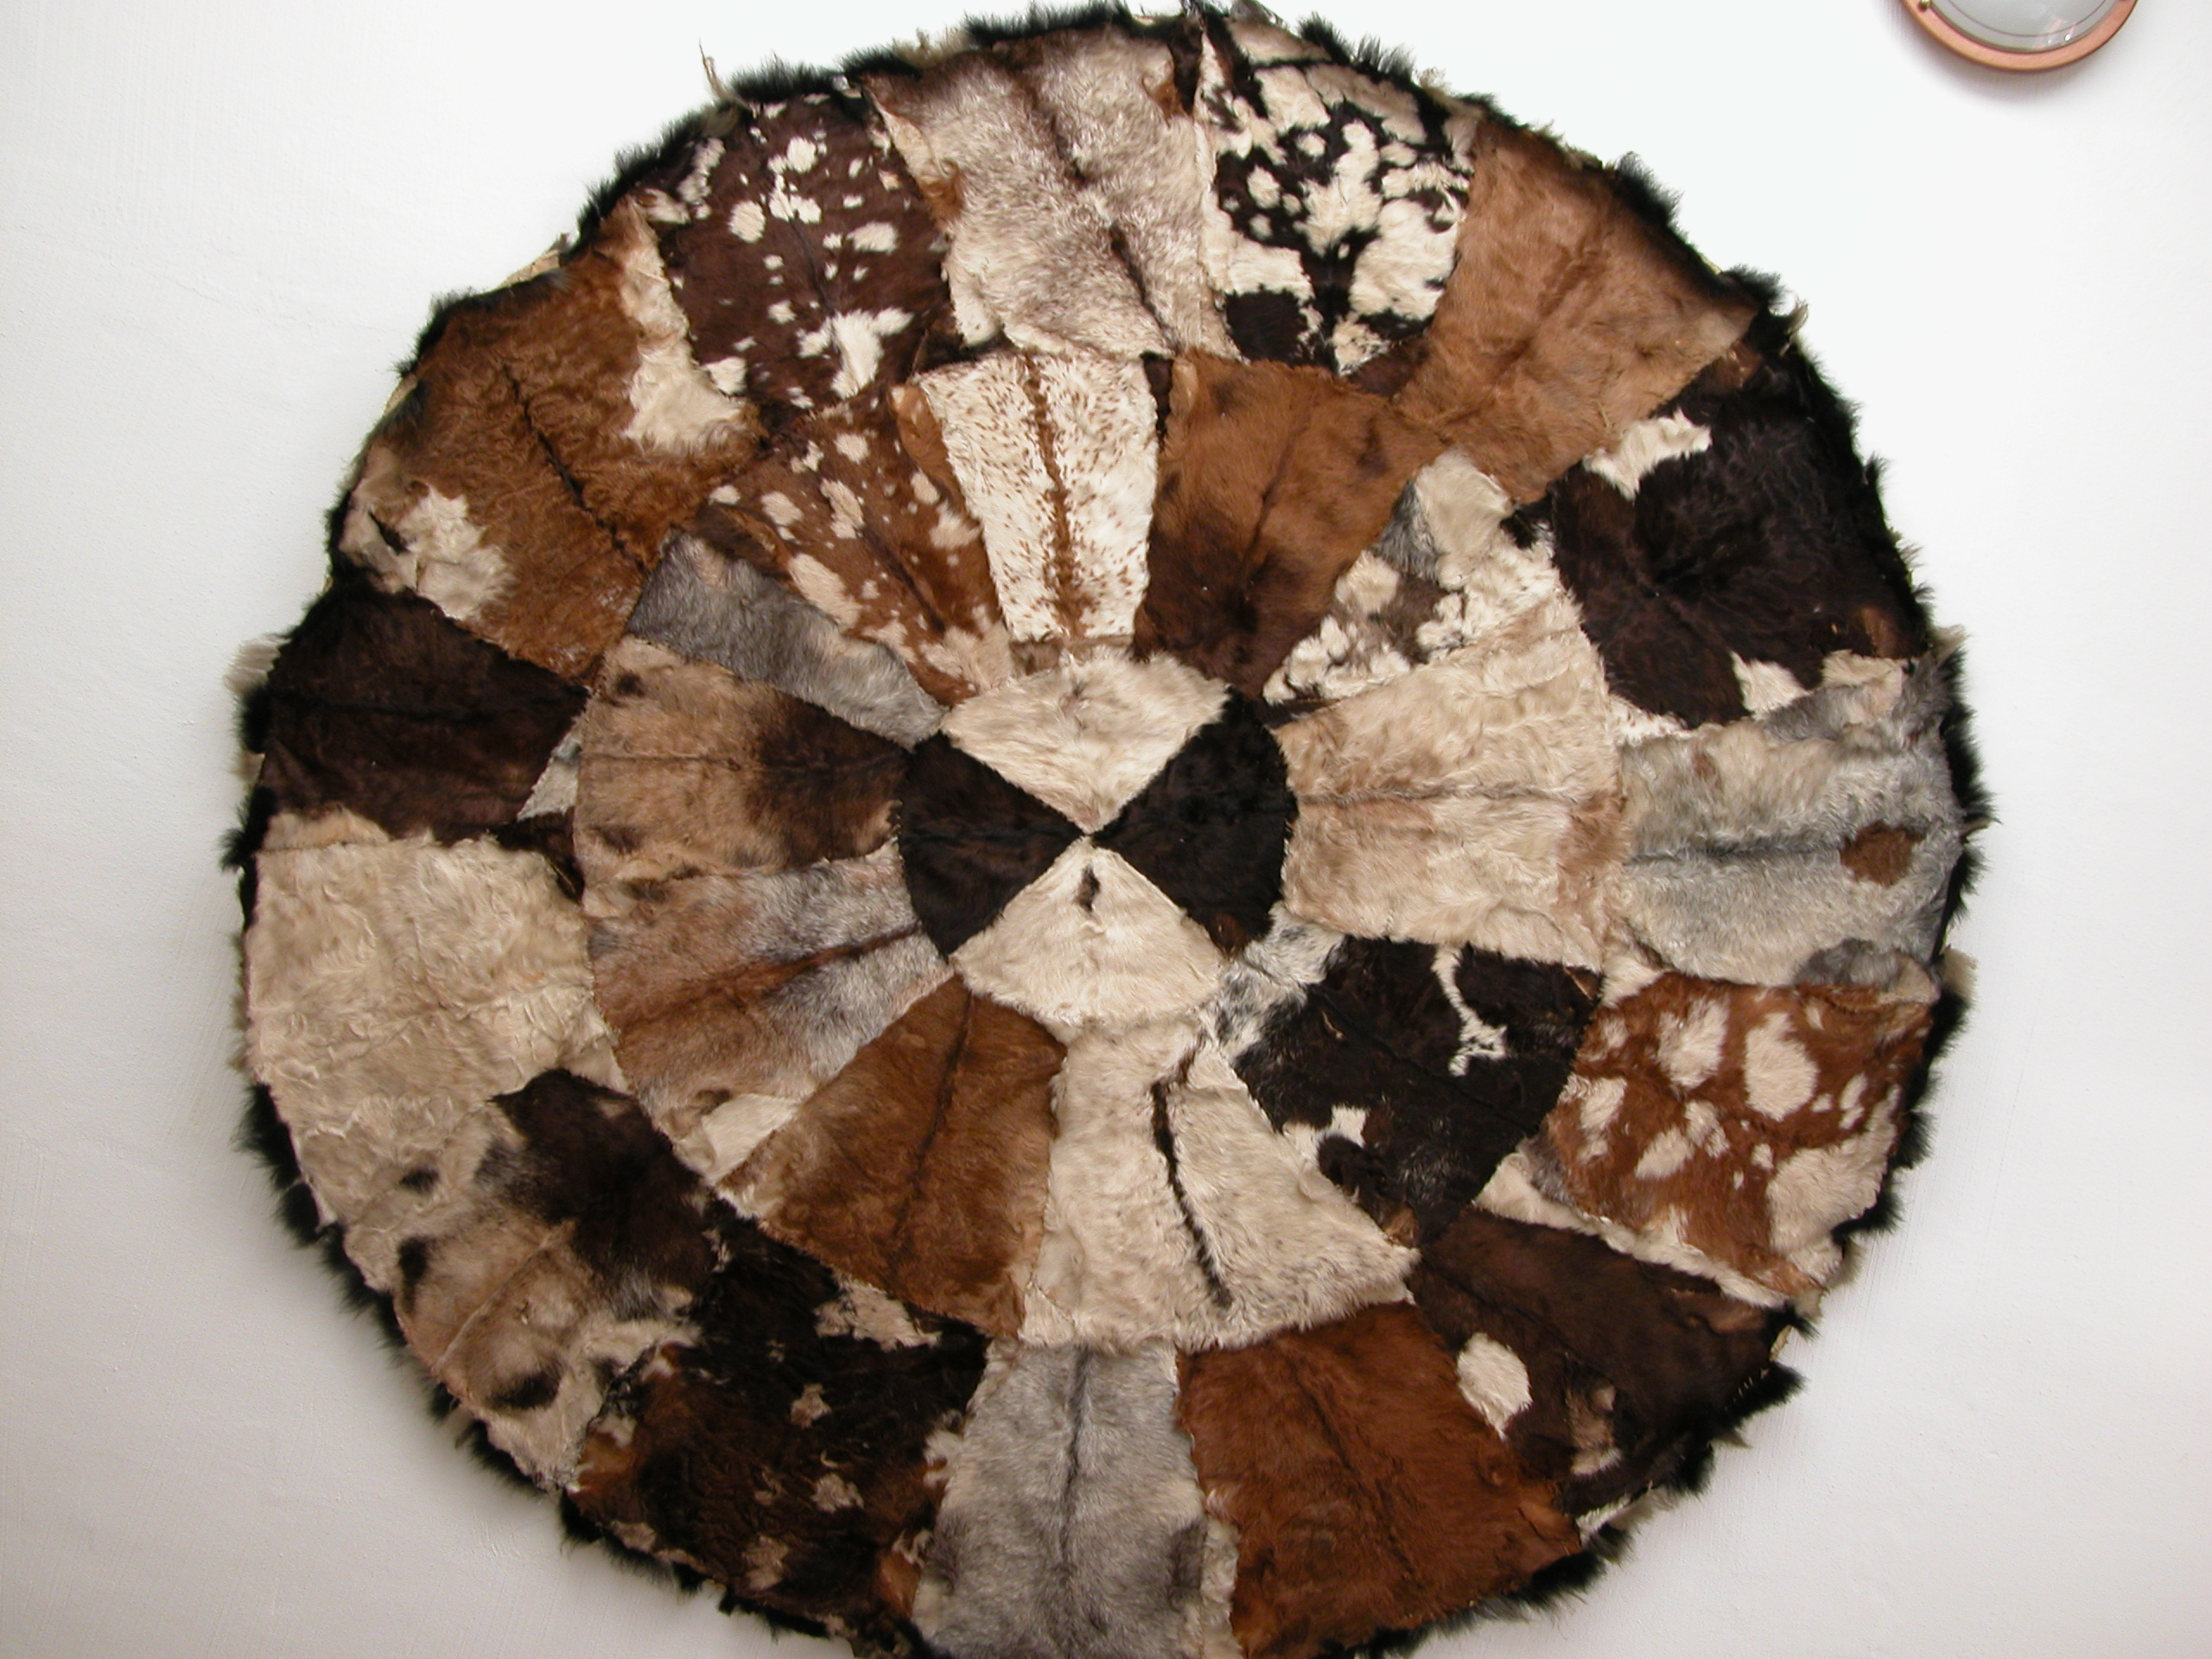 leather skin texture goathide cowhide eritrean eritrea fur hide circle tappice rug